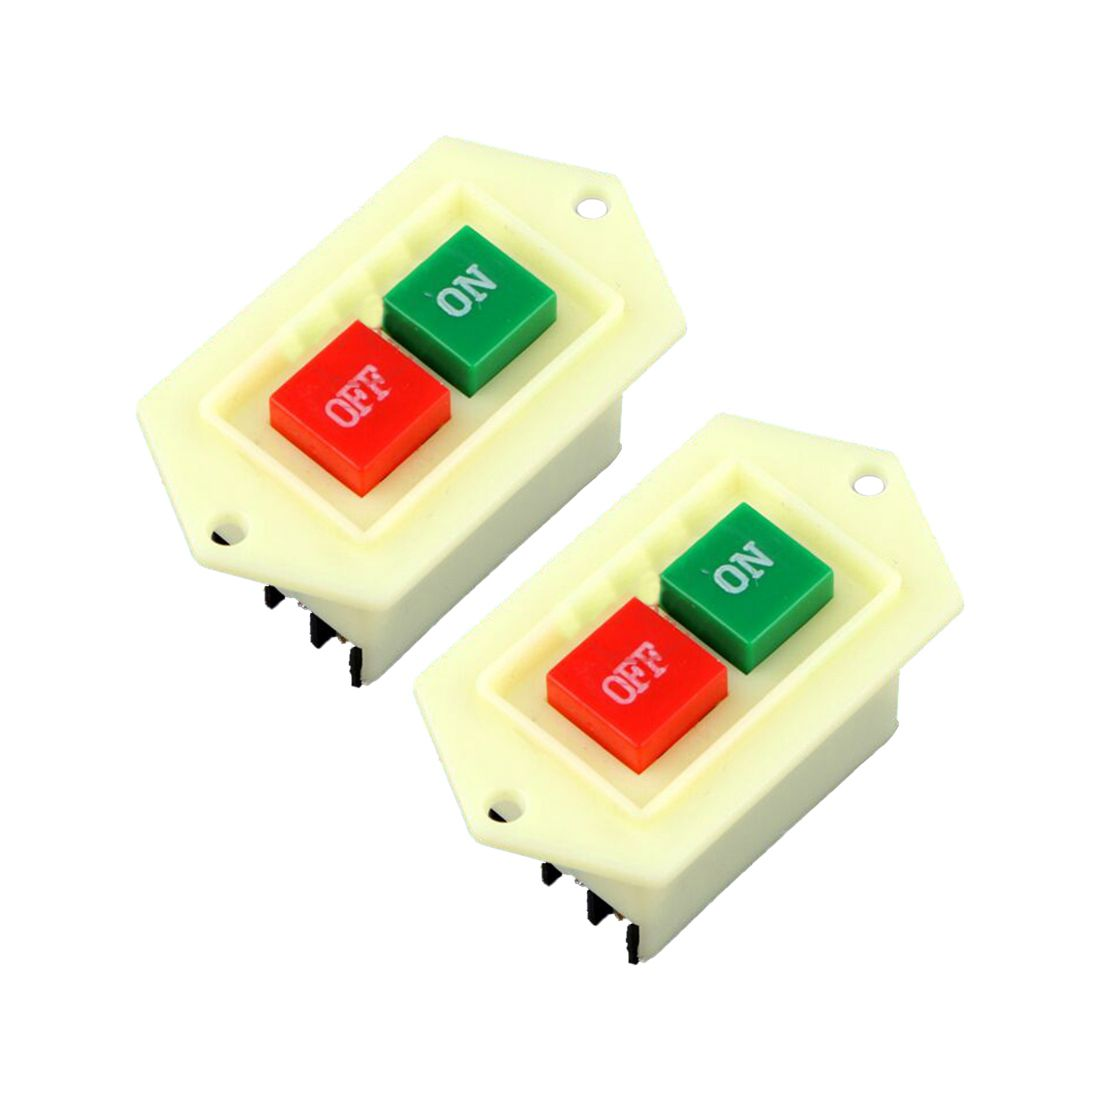 THGS LC3-5 large contact 5A bench drill switch starter button switch 2pcs ...